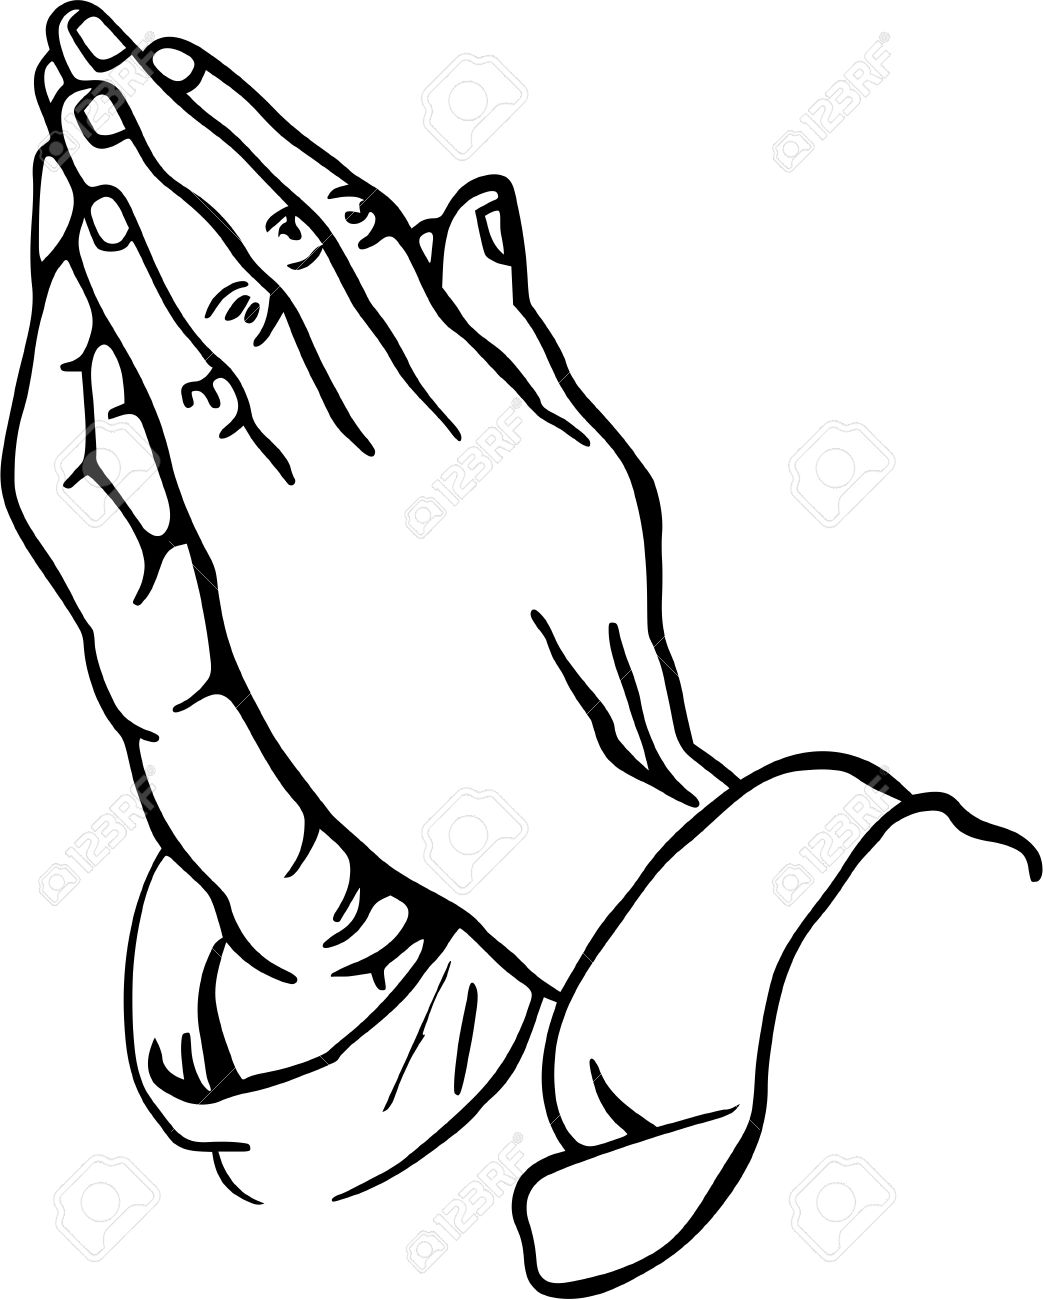 1043x1300 Praying Hands Clipart Free